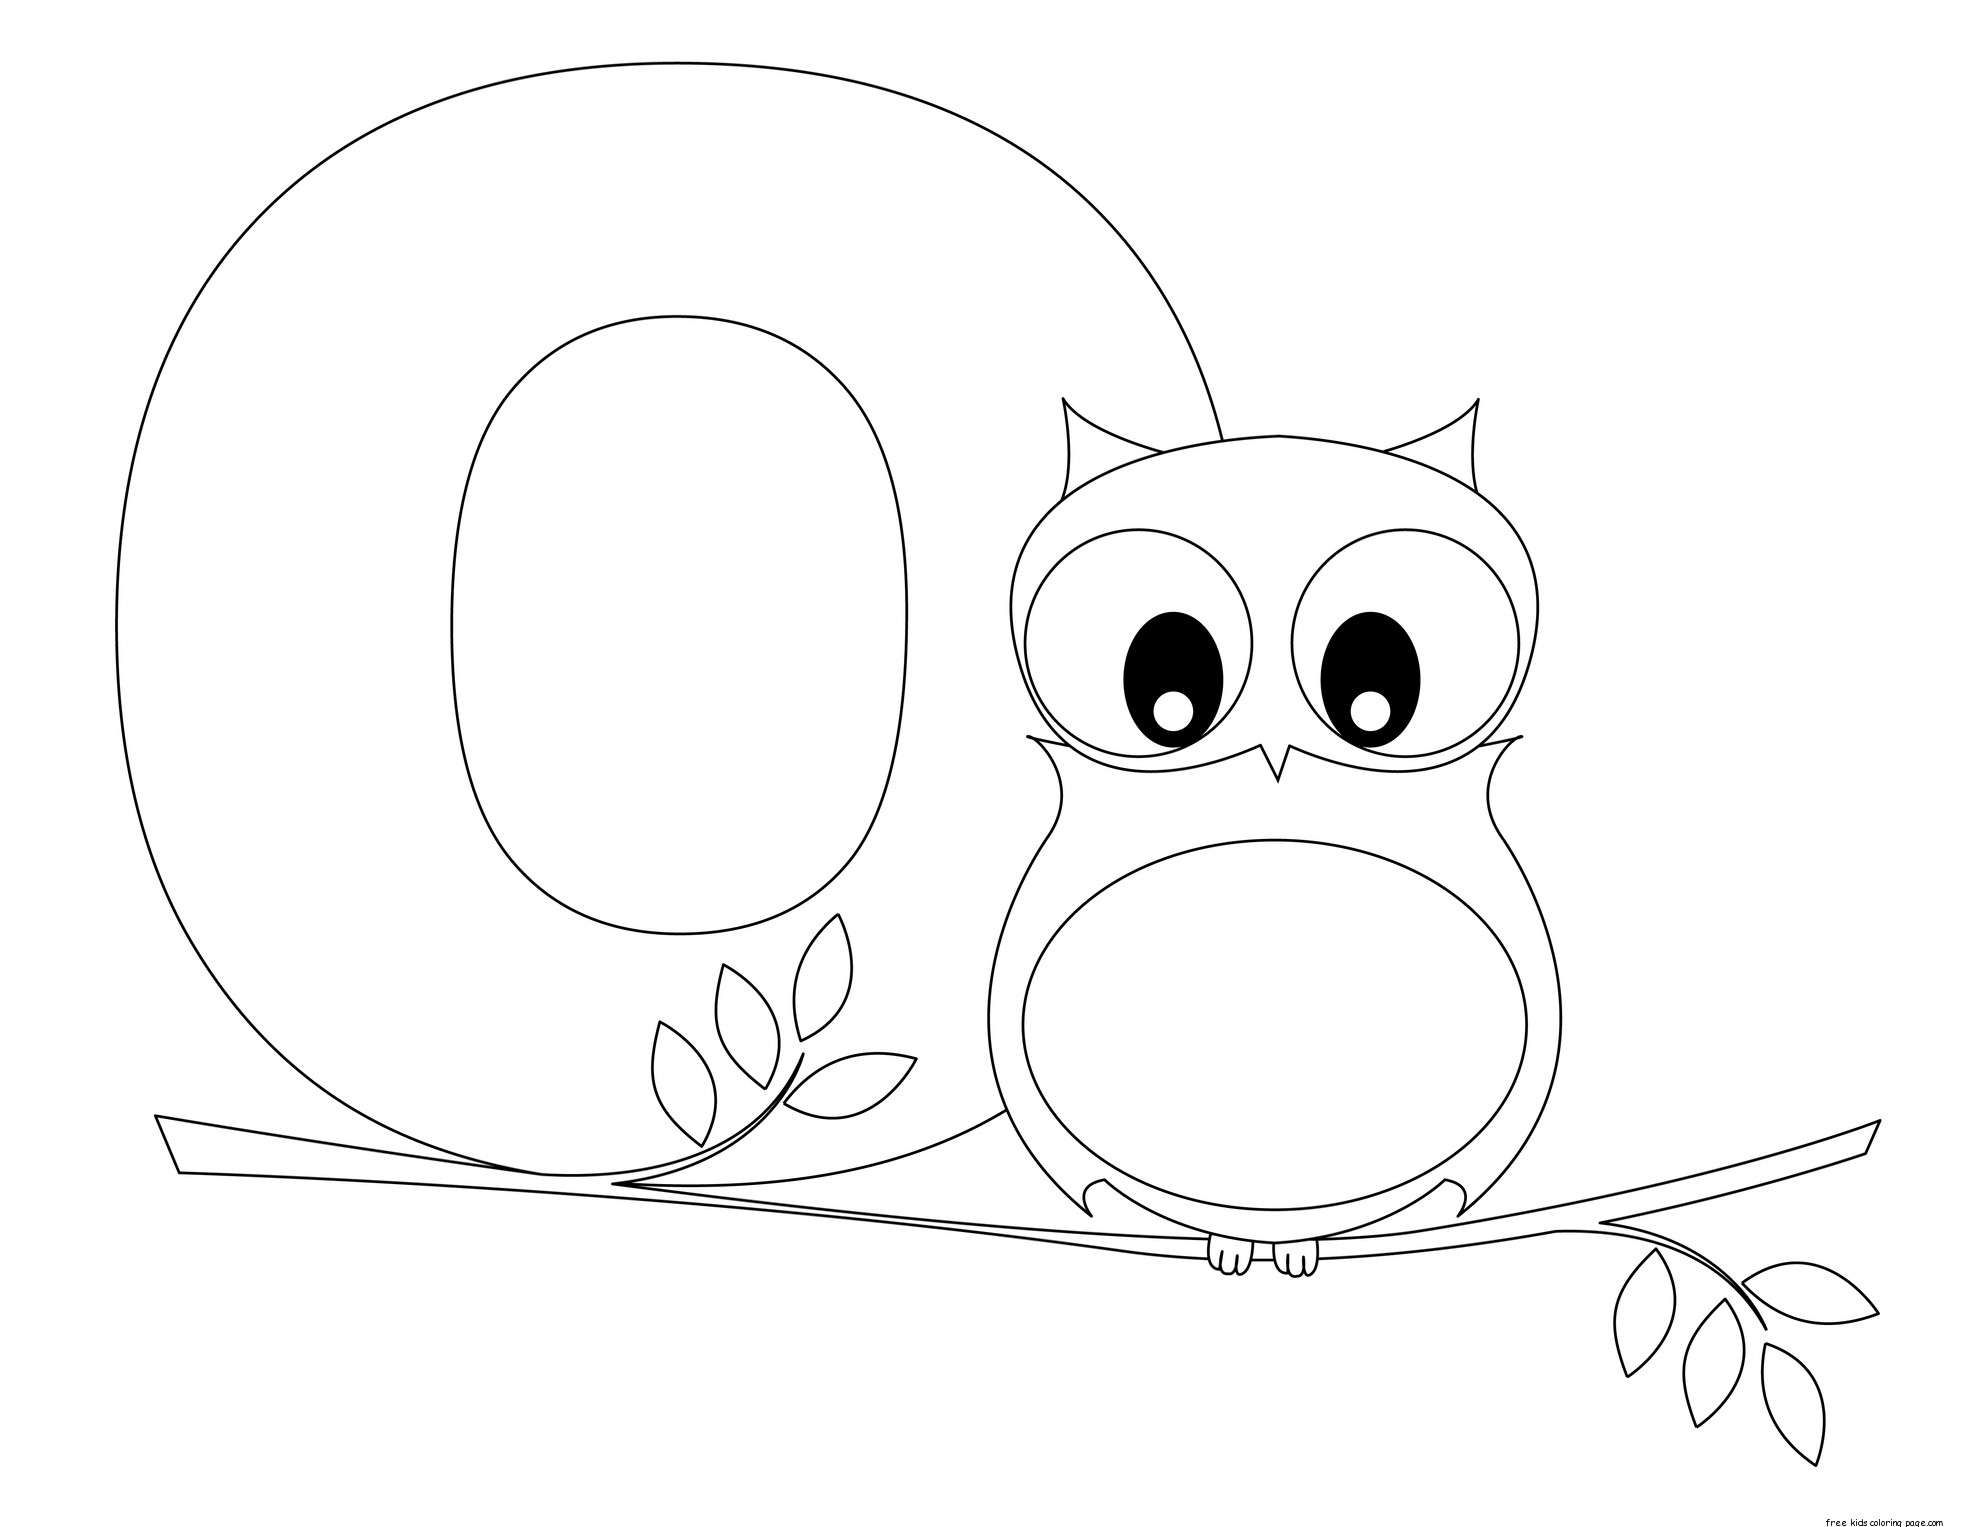 Coloring Lovely Ideas Animal Alphabet Coloring Pages Alphab With Alphabet Use Animal To Easy Owl Coloring Pages Alphabet Coloring Pages Animal Alphabet Letters